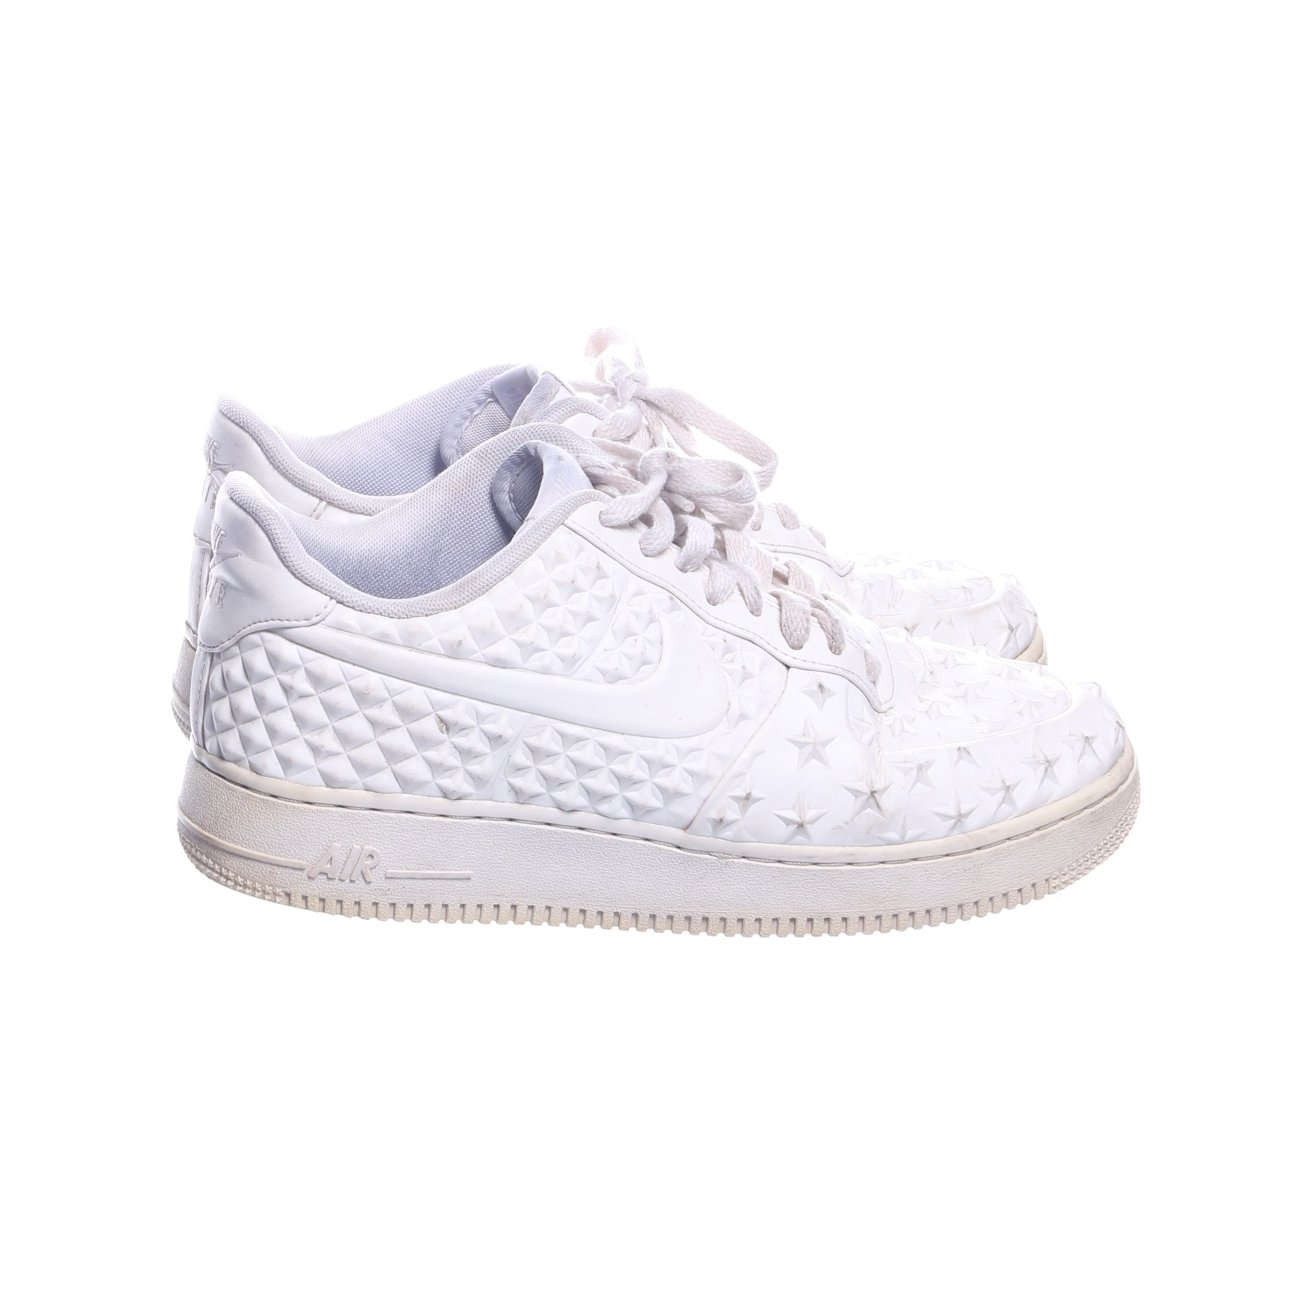 size 40 8bfb6 63600 Nike, Sneakers, Strl  42, Air Force 1 Indepence Day, Vit